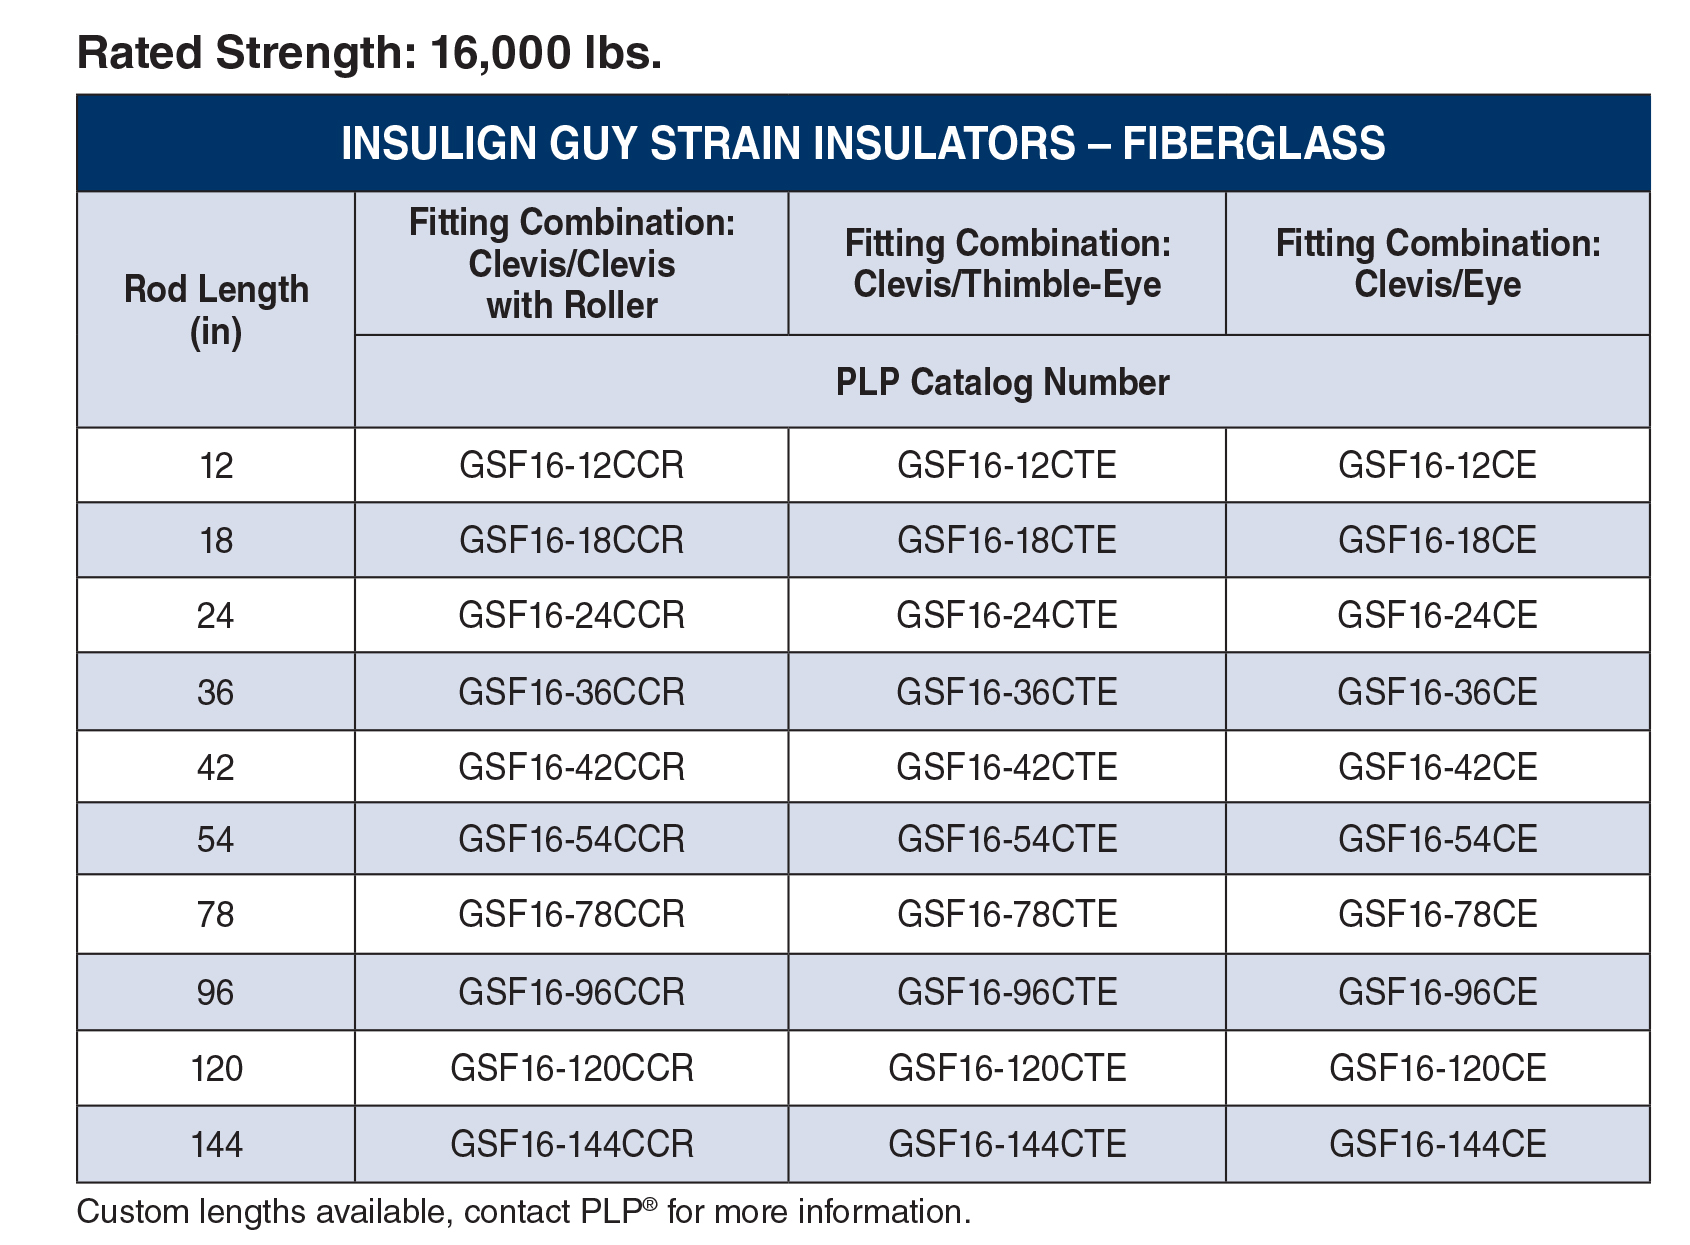 Insulign Guy Strain Insulator Table